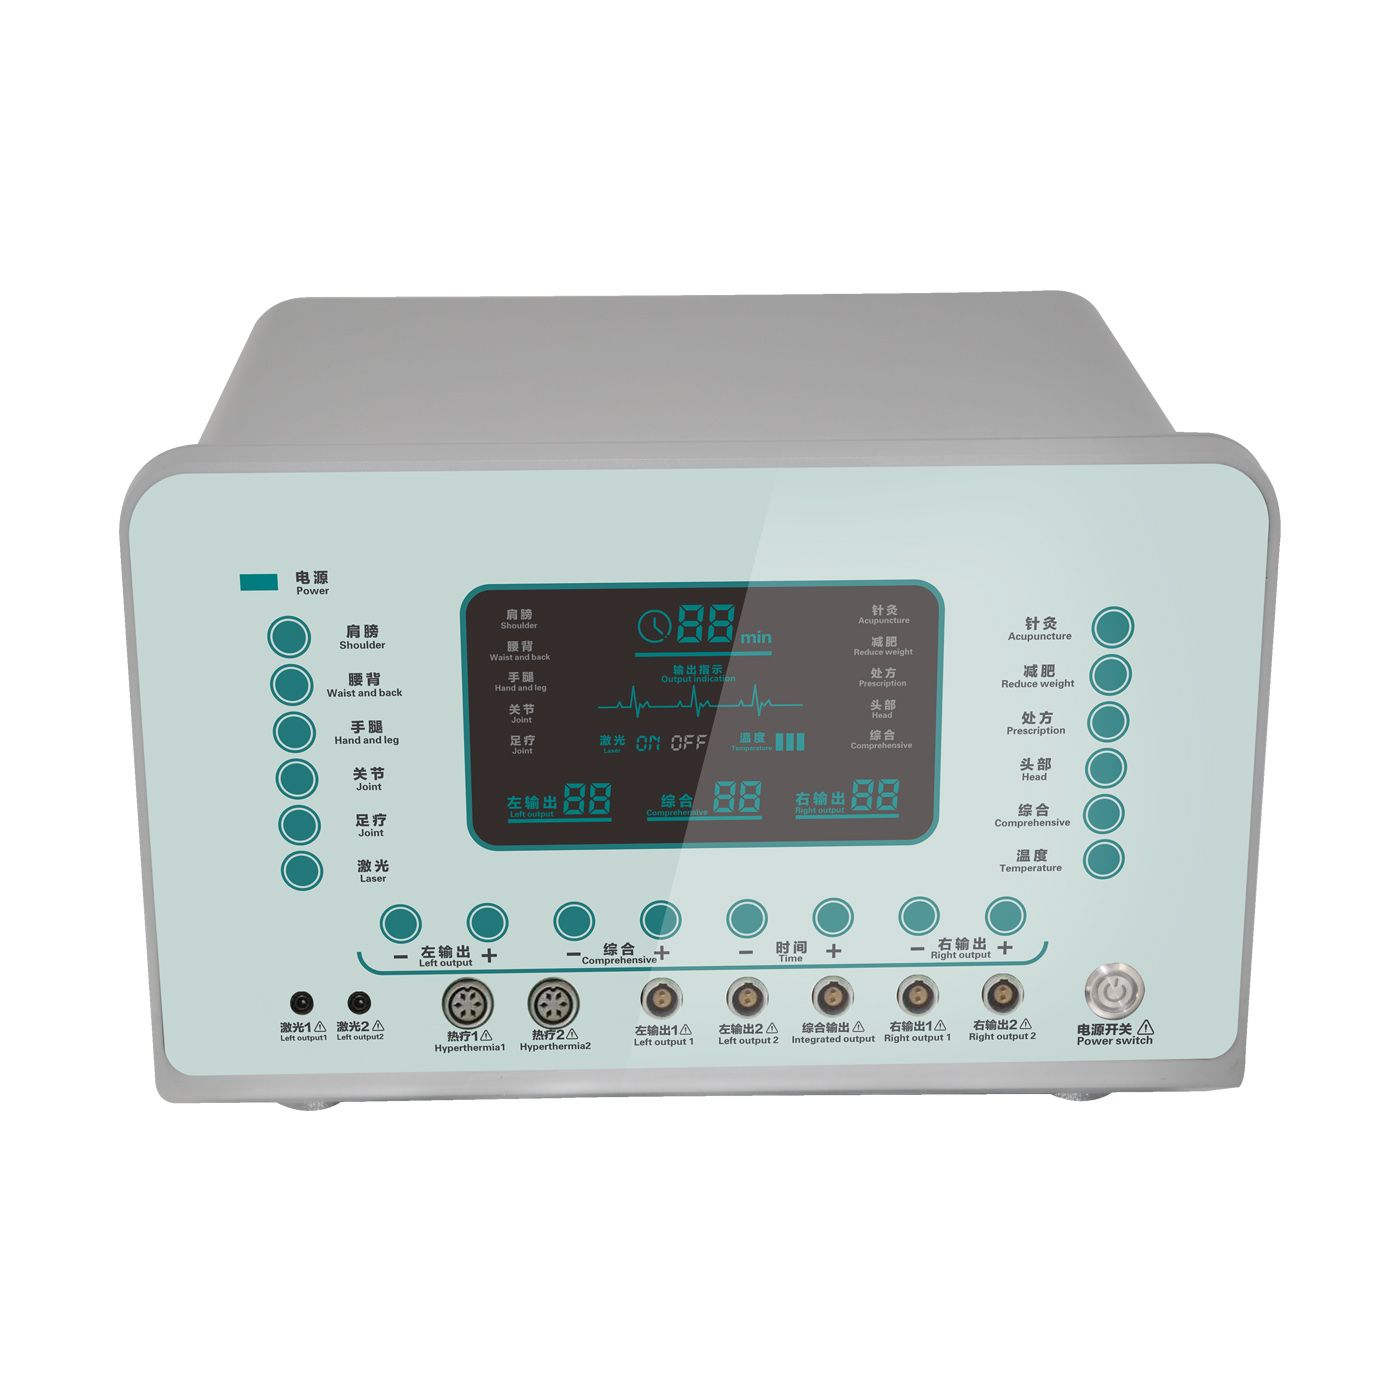 Medium frequency electrotherapy